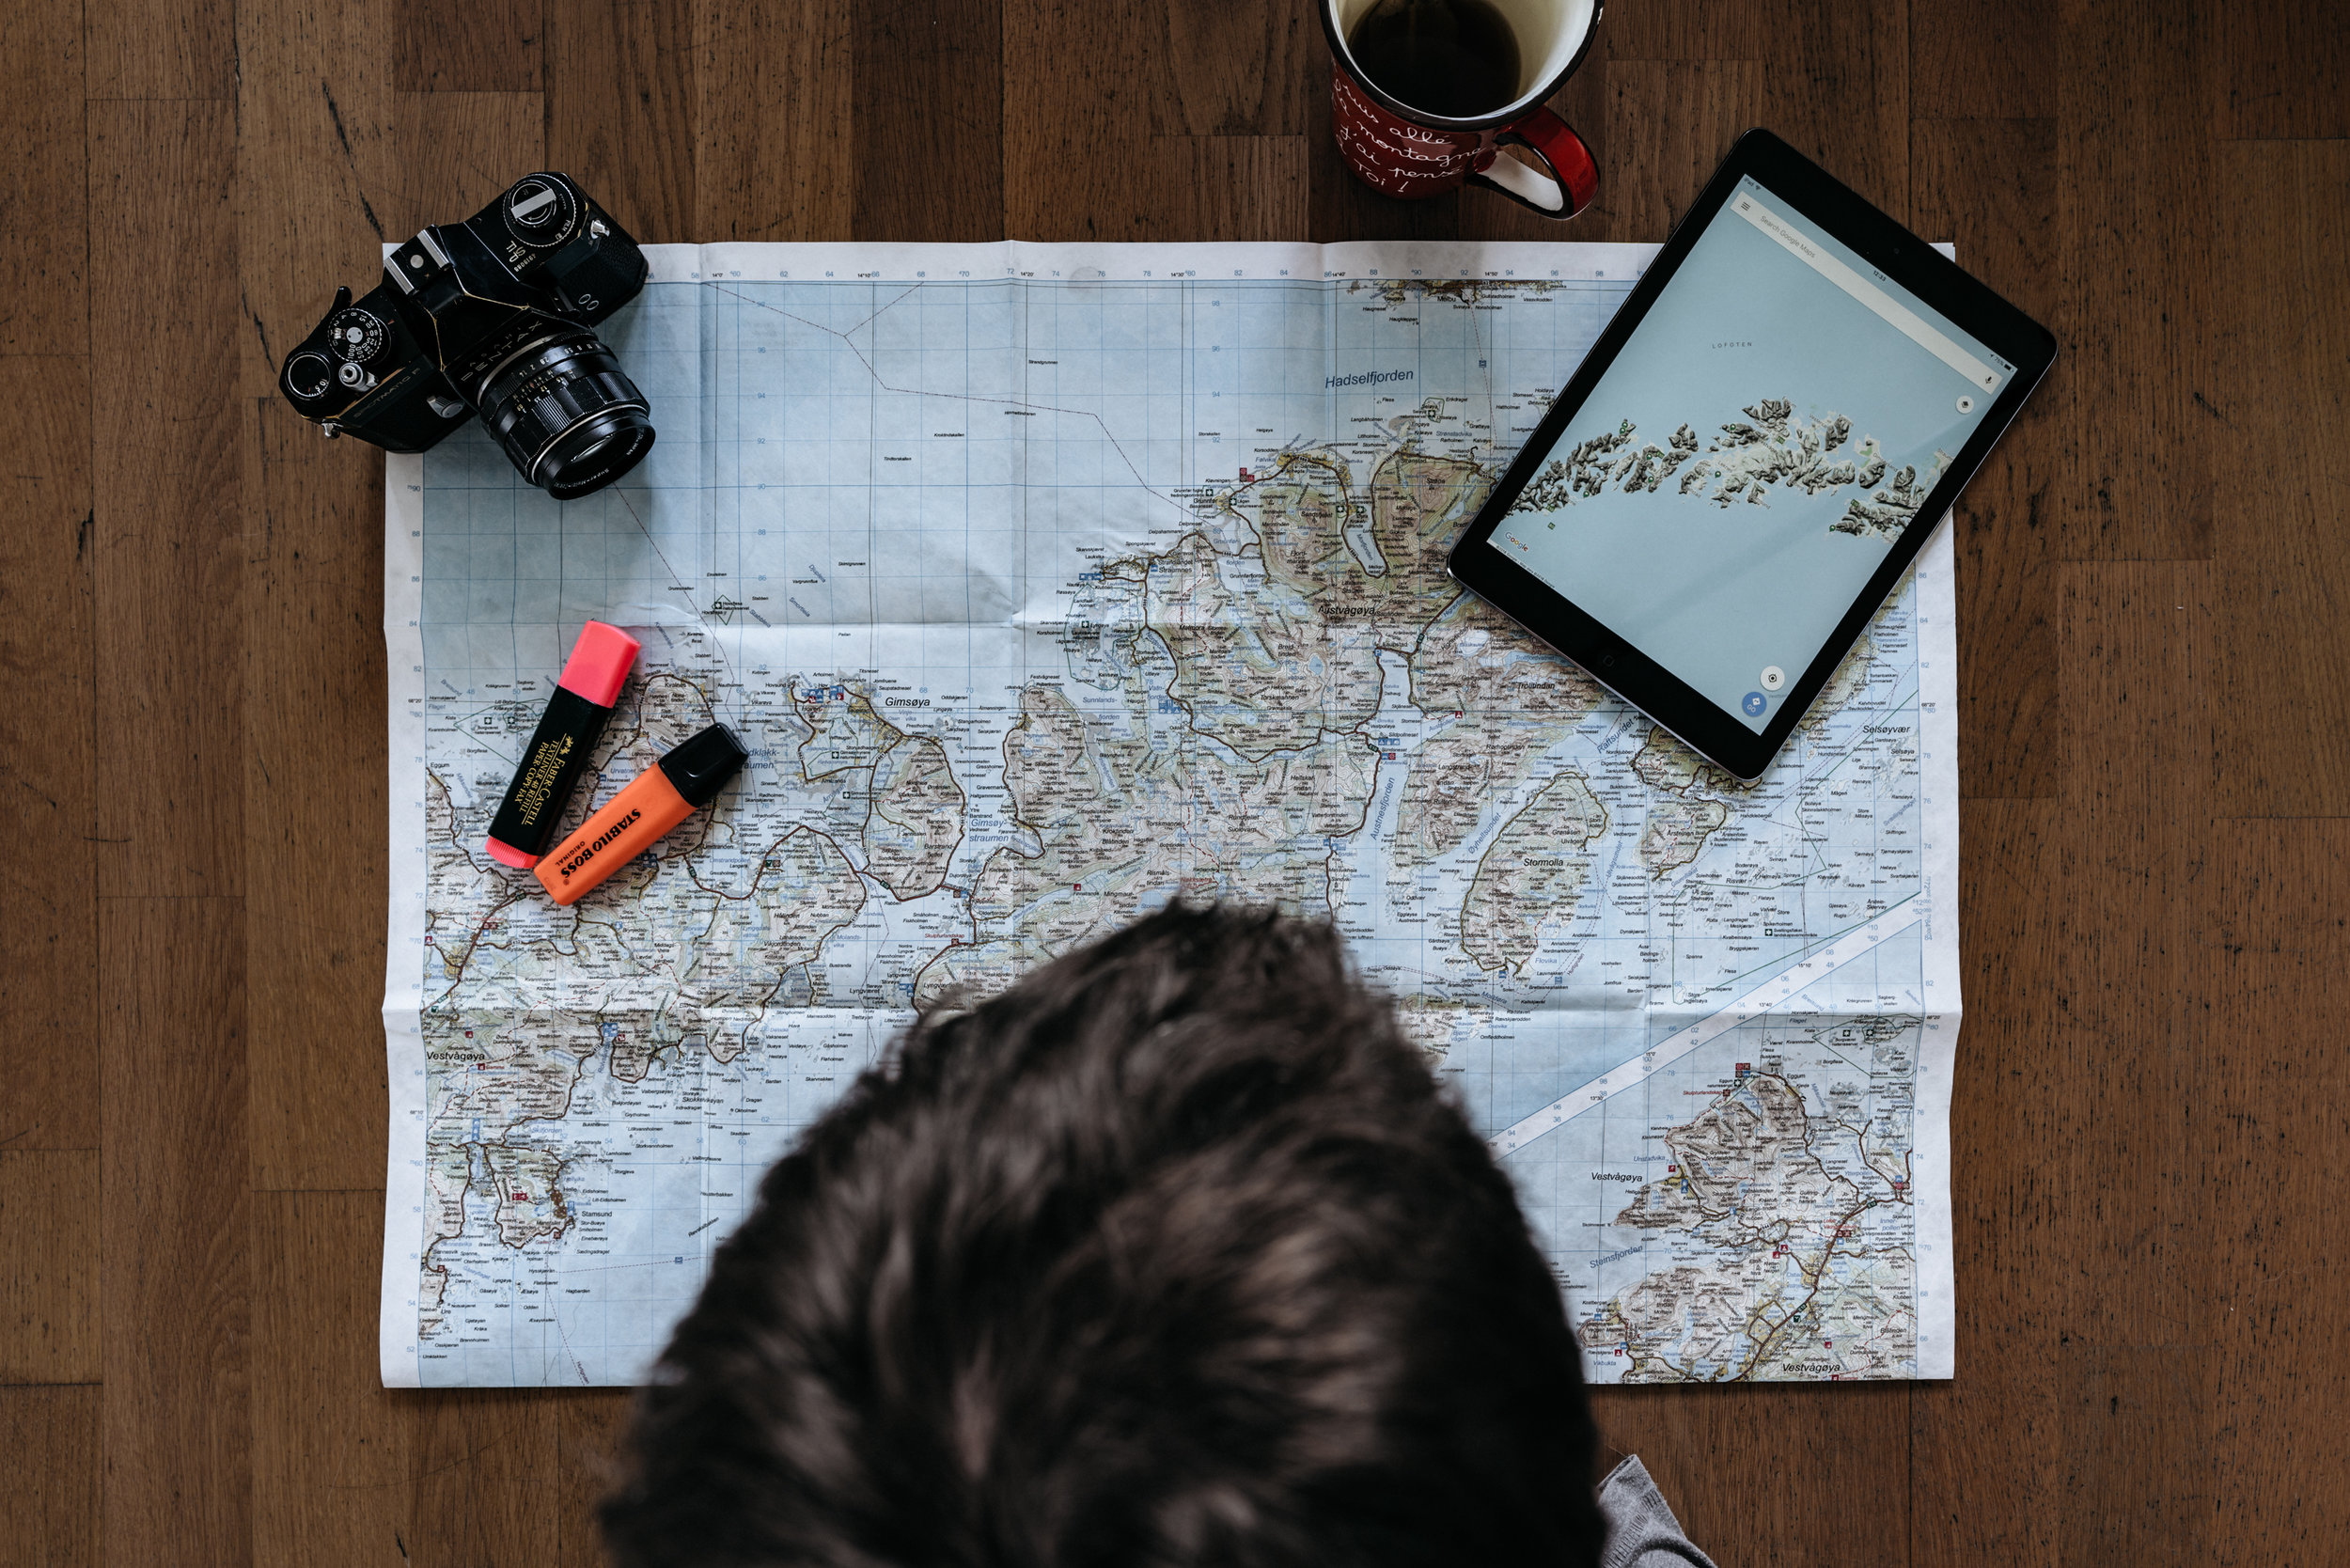 LET US PLAN YOUR TRIP - ONLY 50€! - How about a 100% custom travel plan put together by locals with tons of insider knowledge? Simply answer a few questions so we know what you are looking for and receive a digital travel plan tailored exactly to what you are looking for. Find out more here.